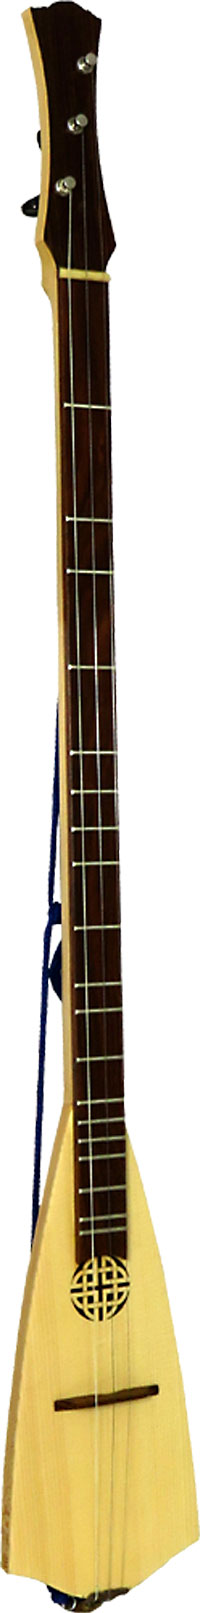 Blue Moon BD-20 Dulcimer Stick in D Dulcimer style instrument, great volume for size! Very easy to play